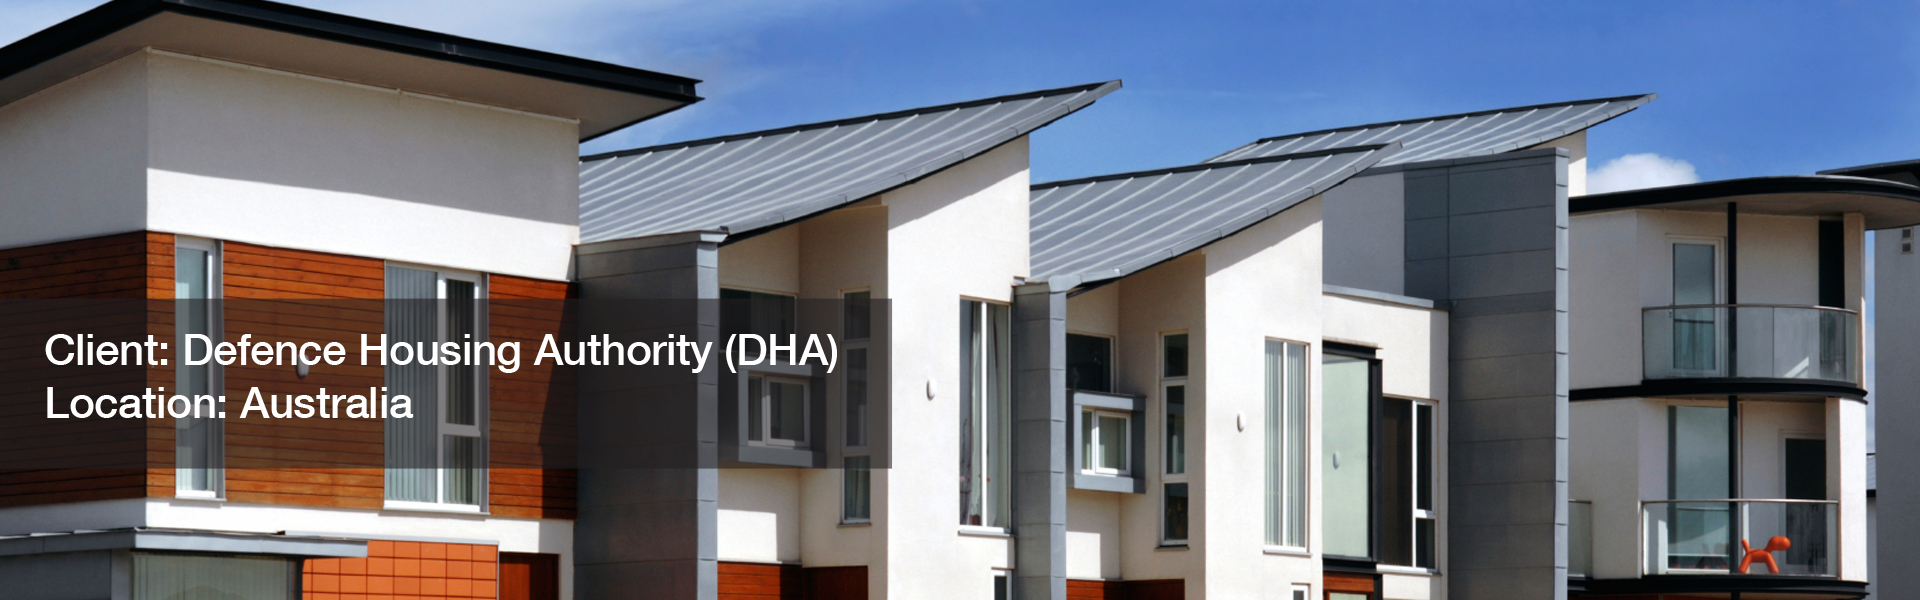 Defence Housing Authority Portfolio Analysis